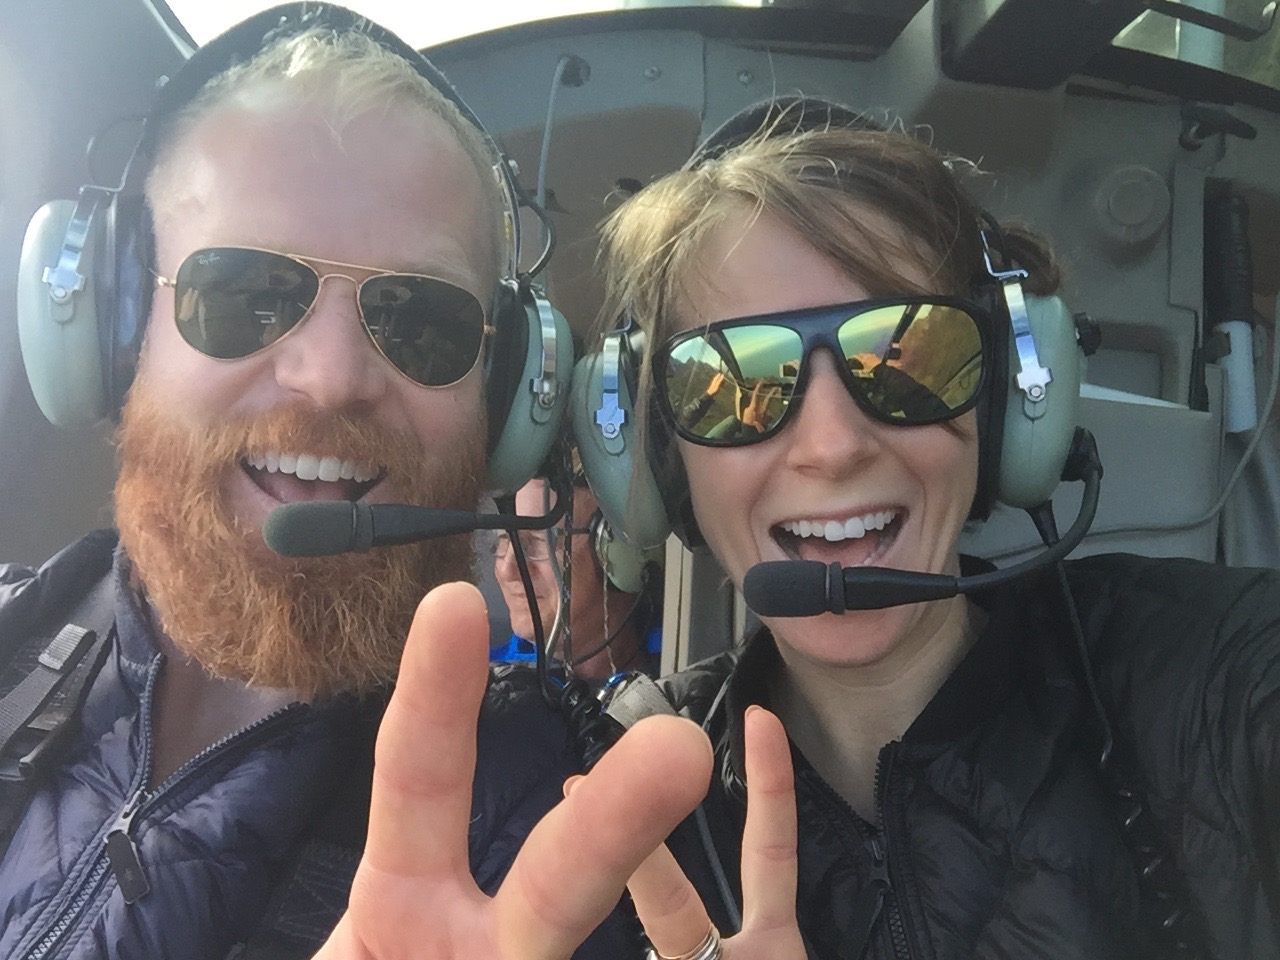 Fun times in the helicopter!